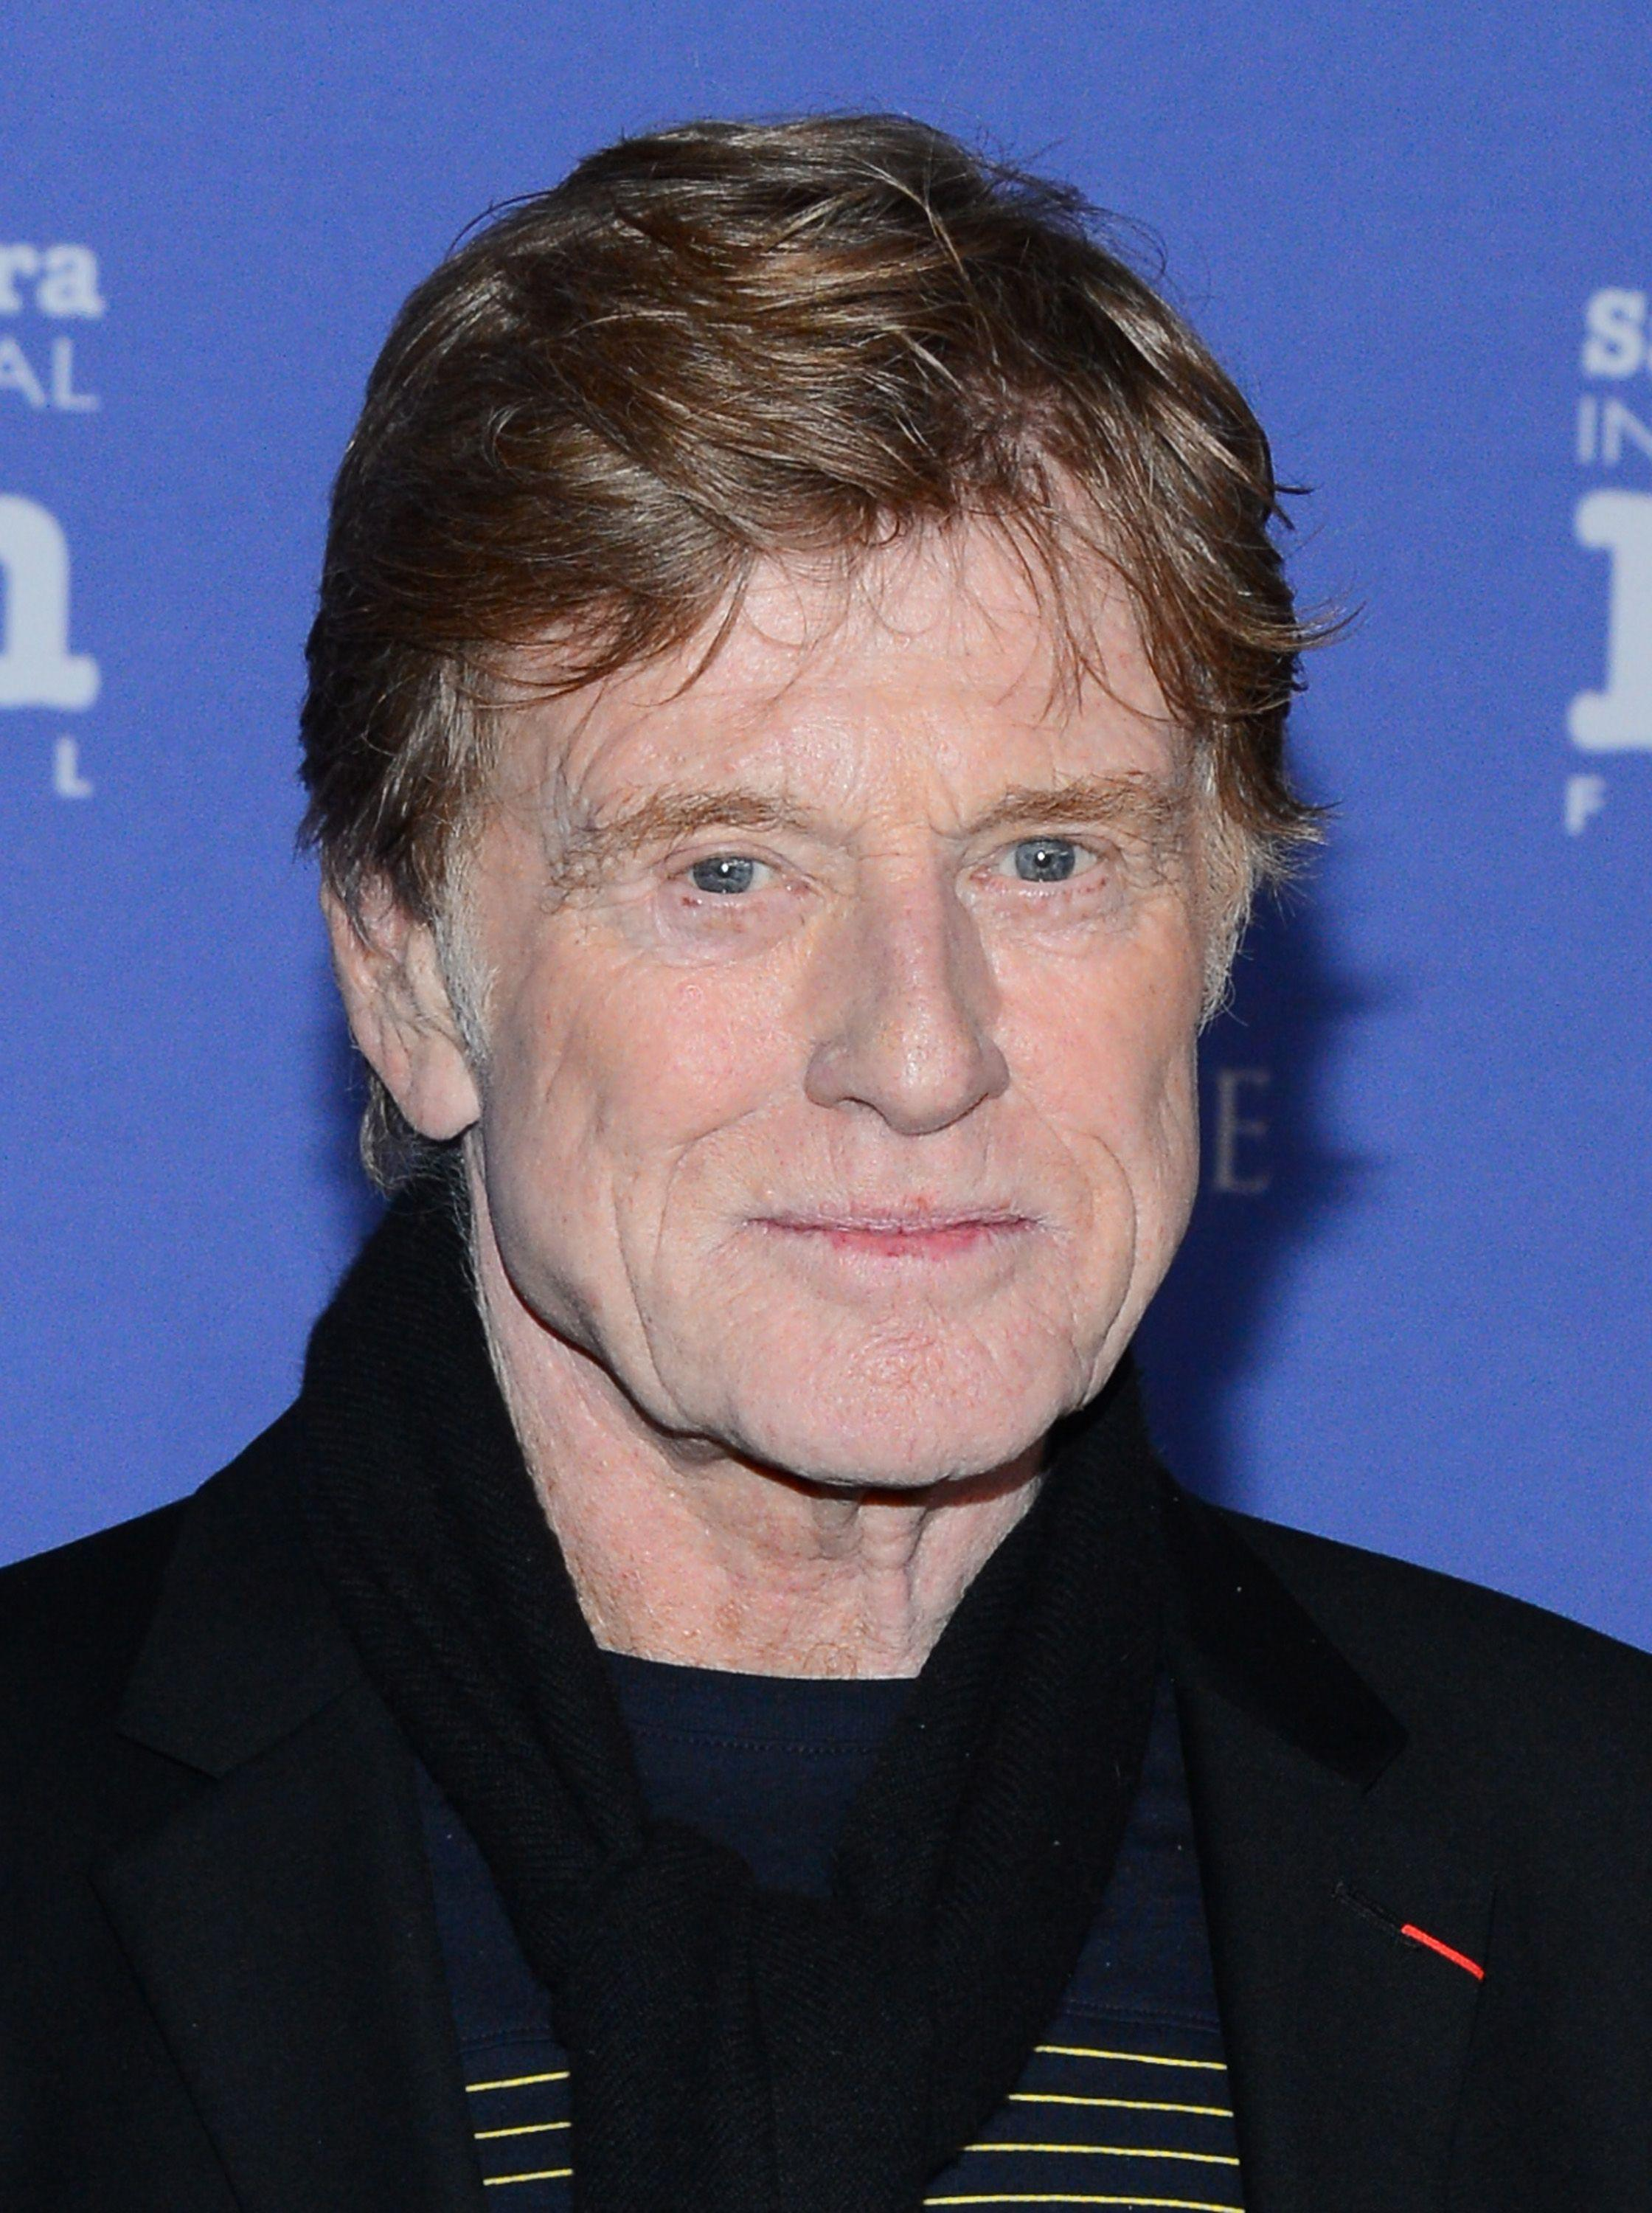 Pictures of Robert Redford, Picture #92795 - Pictures Of Celebrities